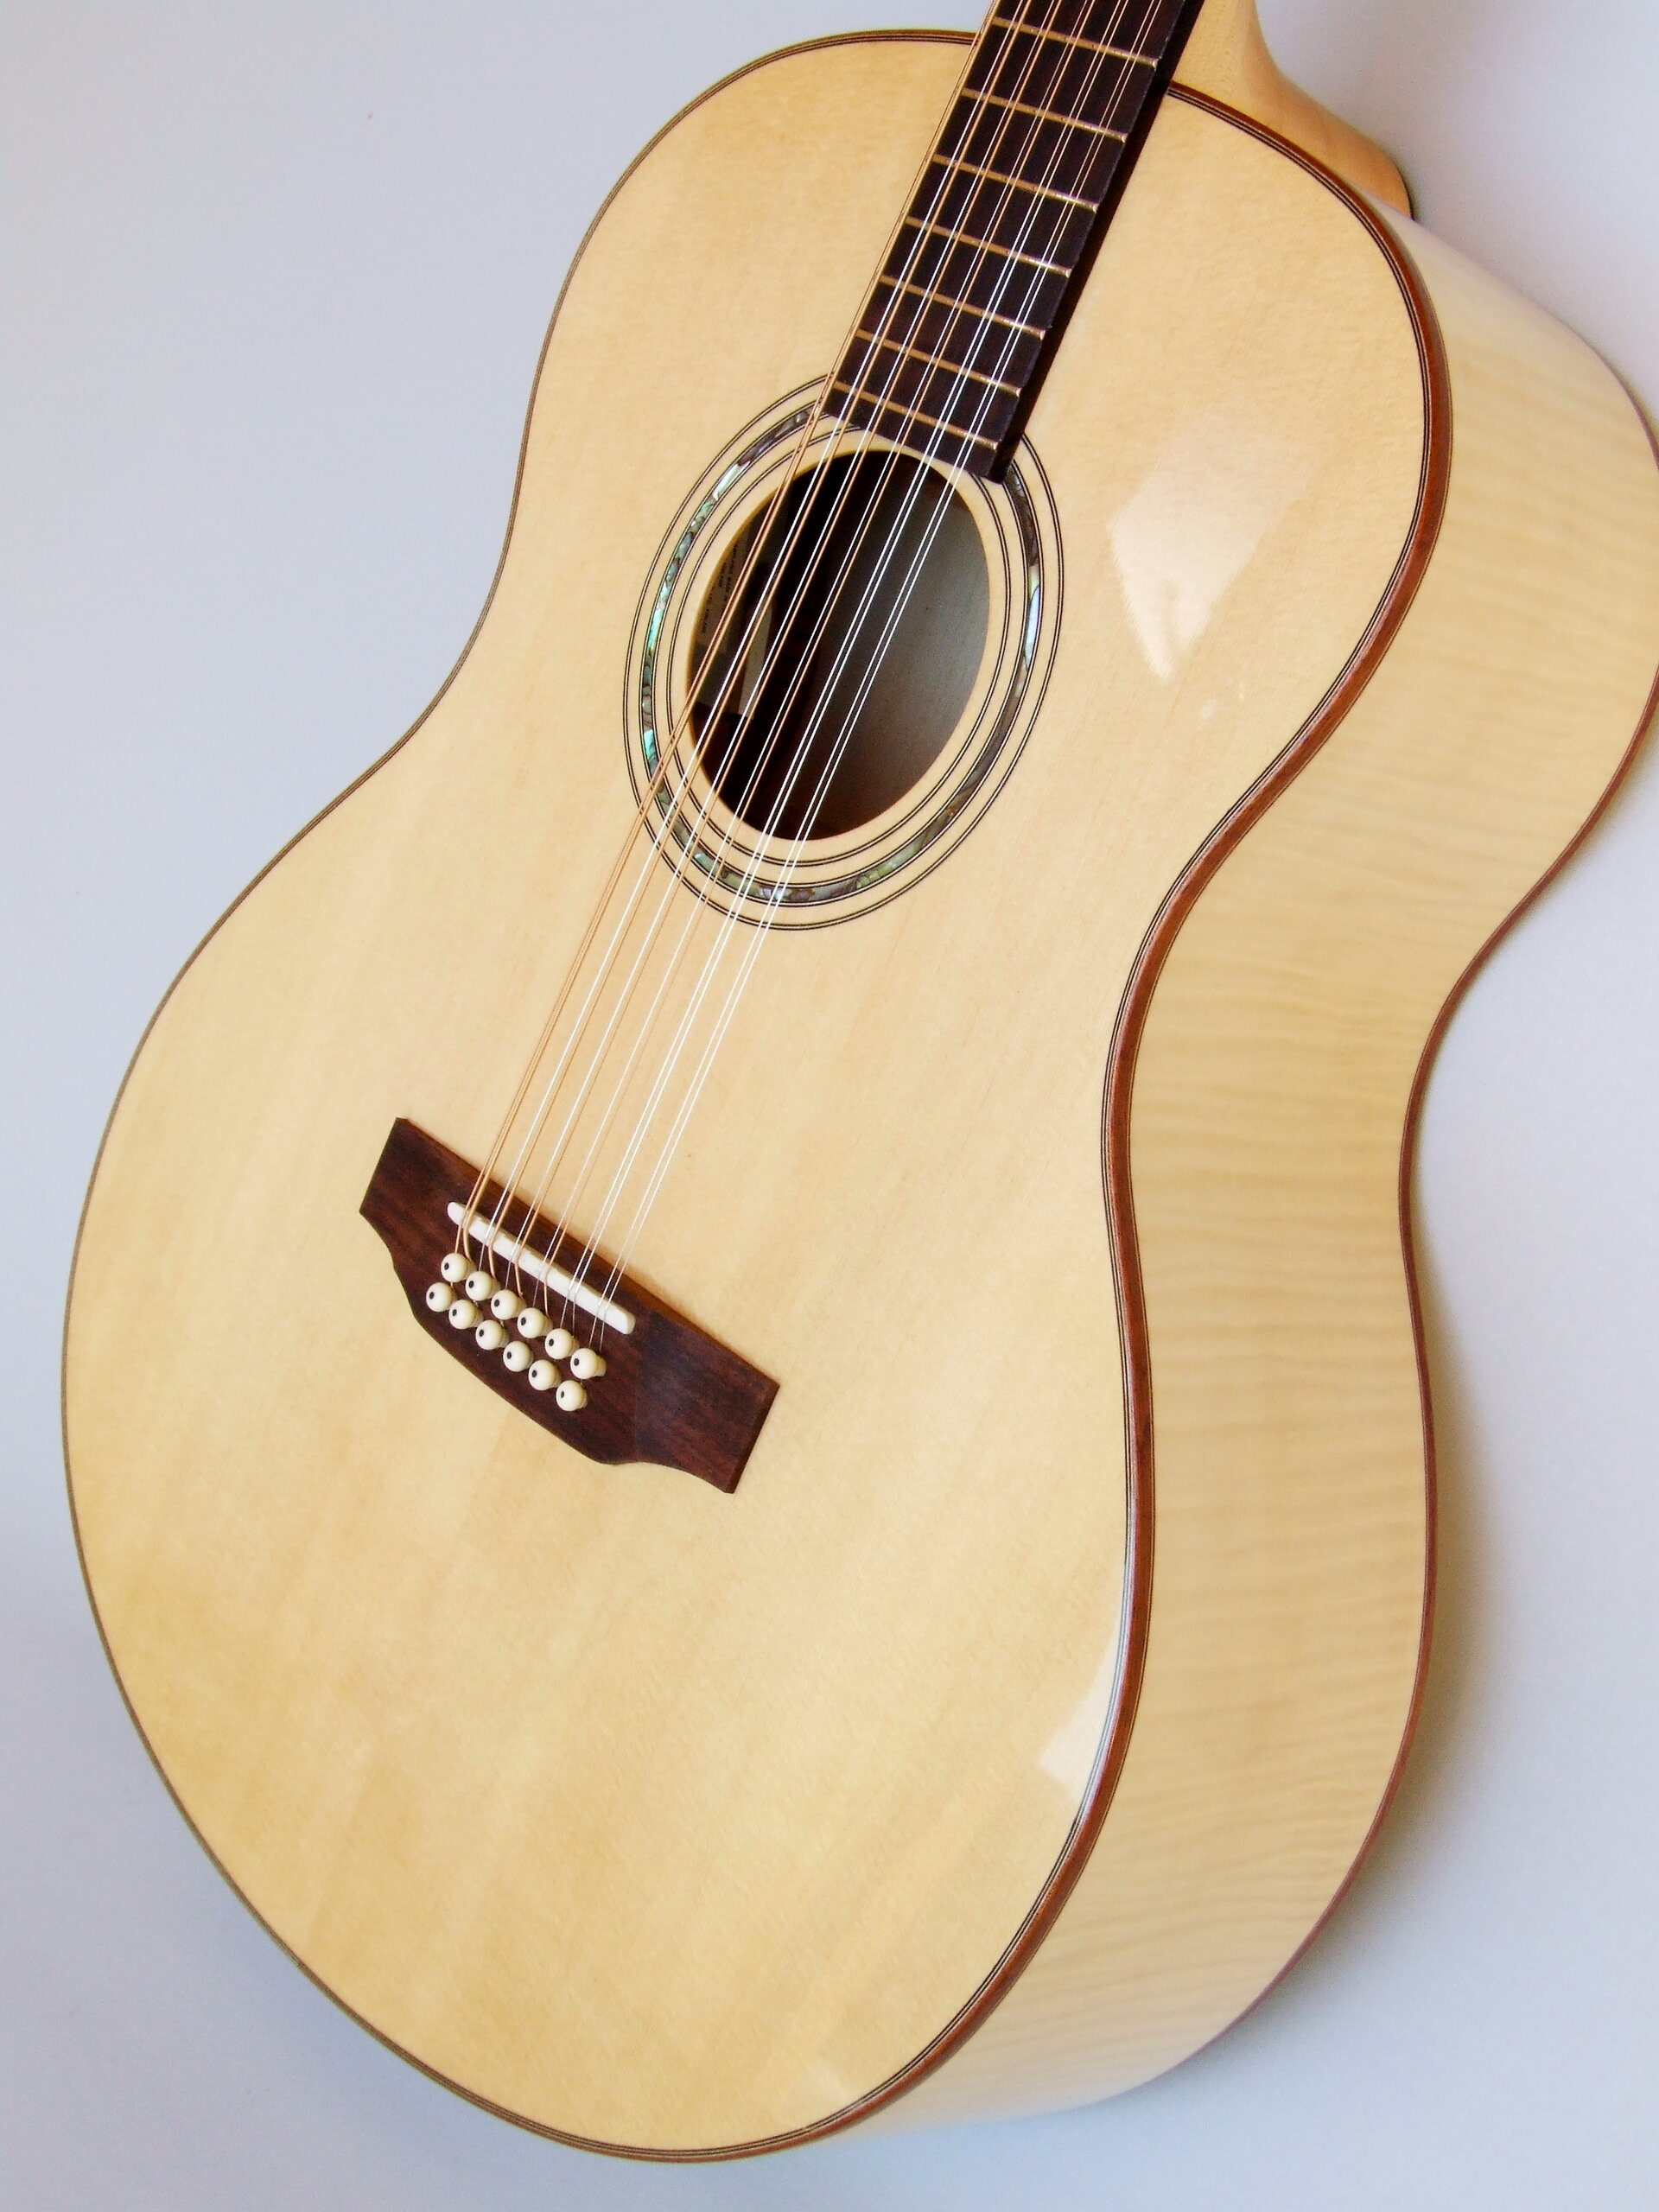 12-string maple bodied guitar by Trevor Gore